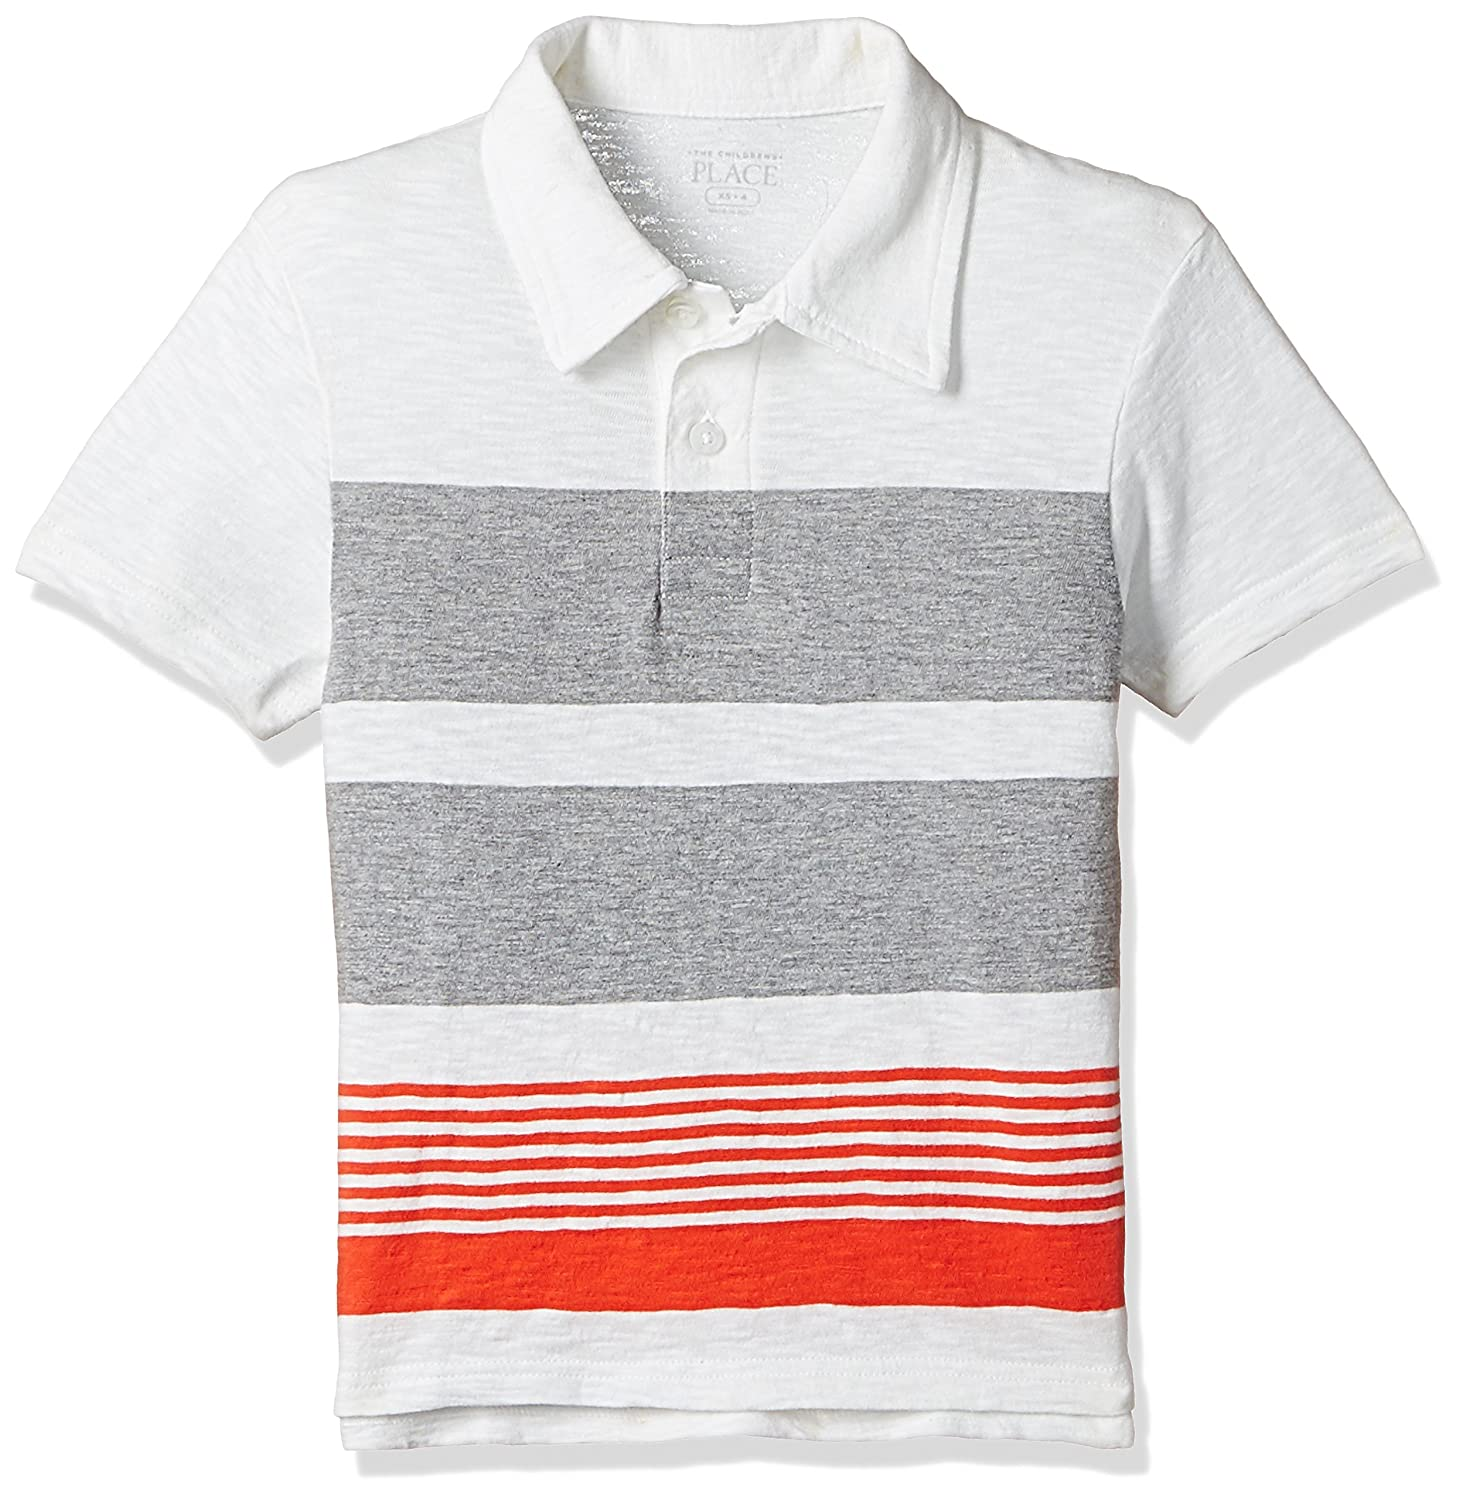 Amazon The Childrens Place Boys Striped Polo Shirt Clothing